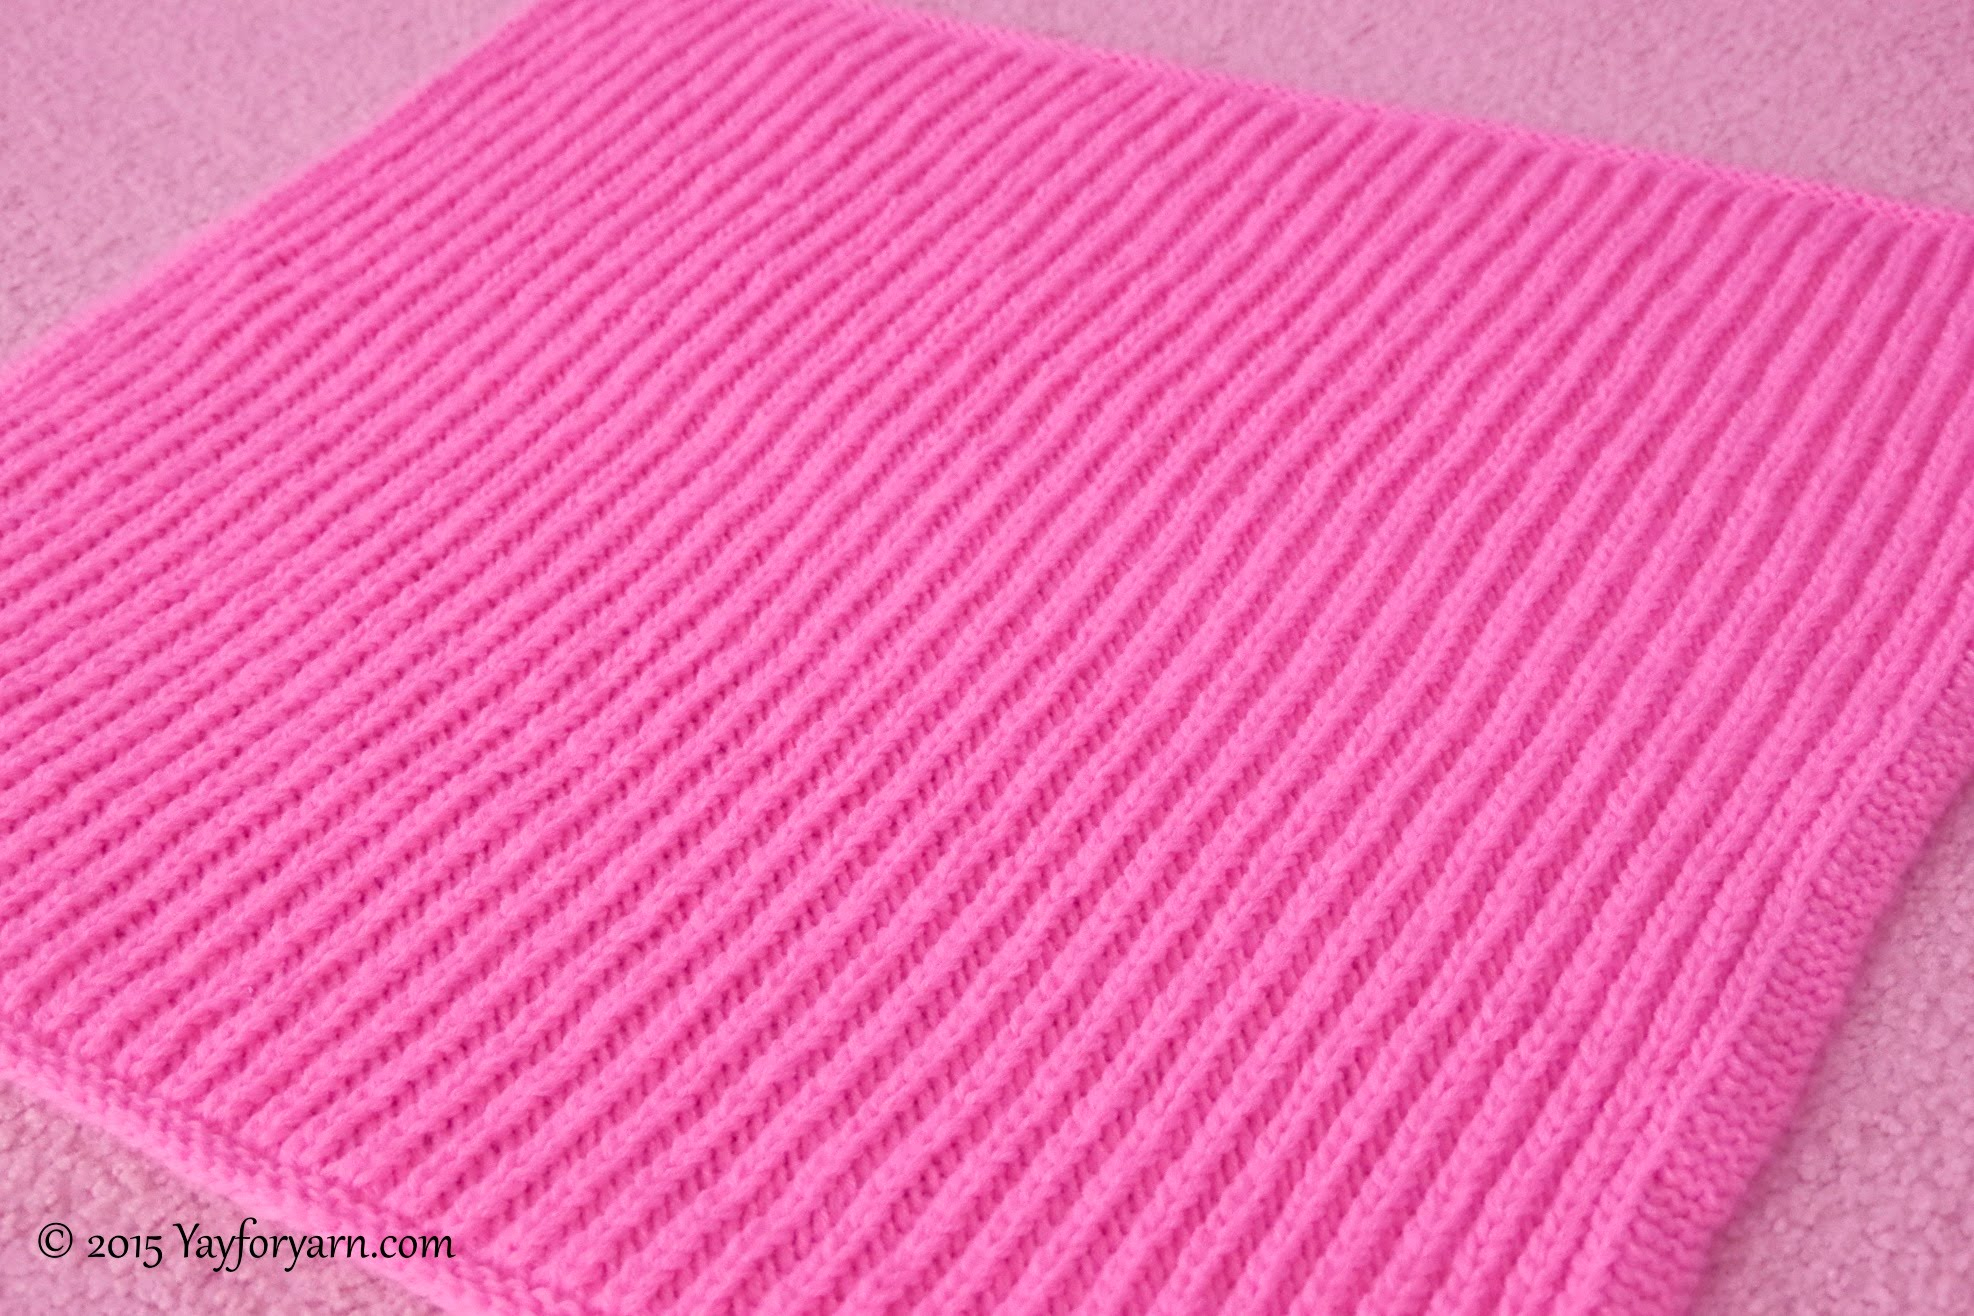 Free Easy Knitting Patterns For Baby Blankets Easy Brioche Ba Blanket Free Knitting Pattern Yayforyarn